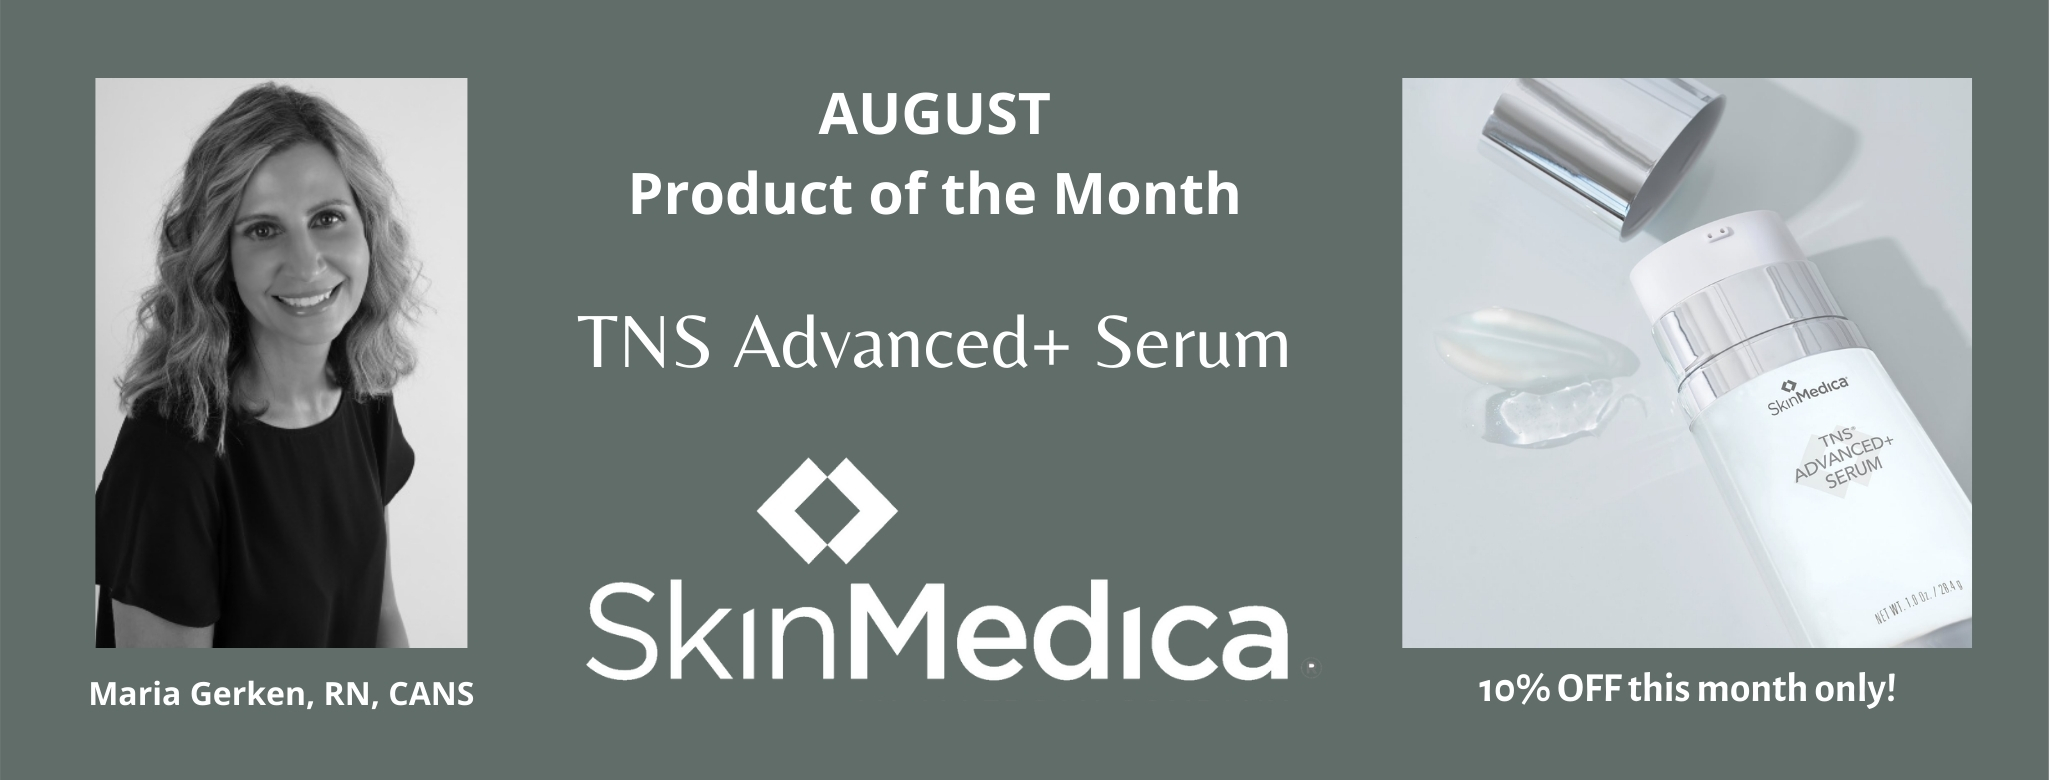 August Product of the Month